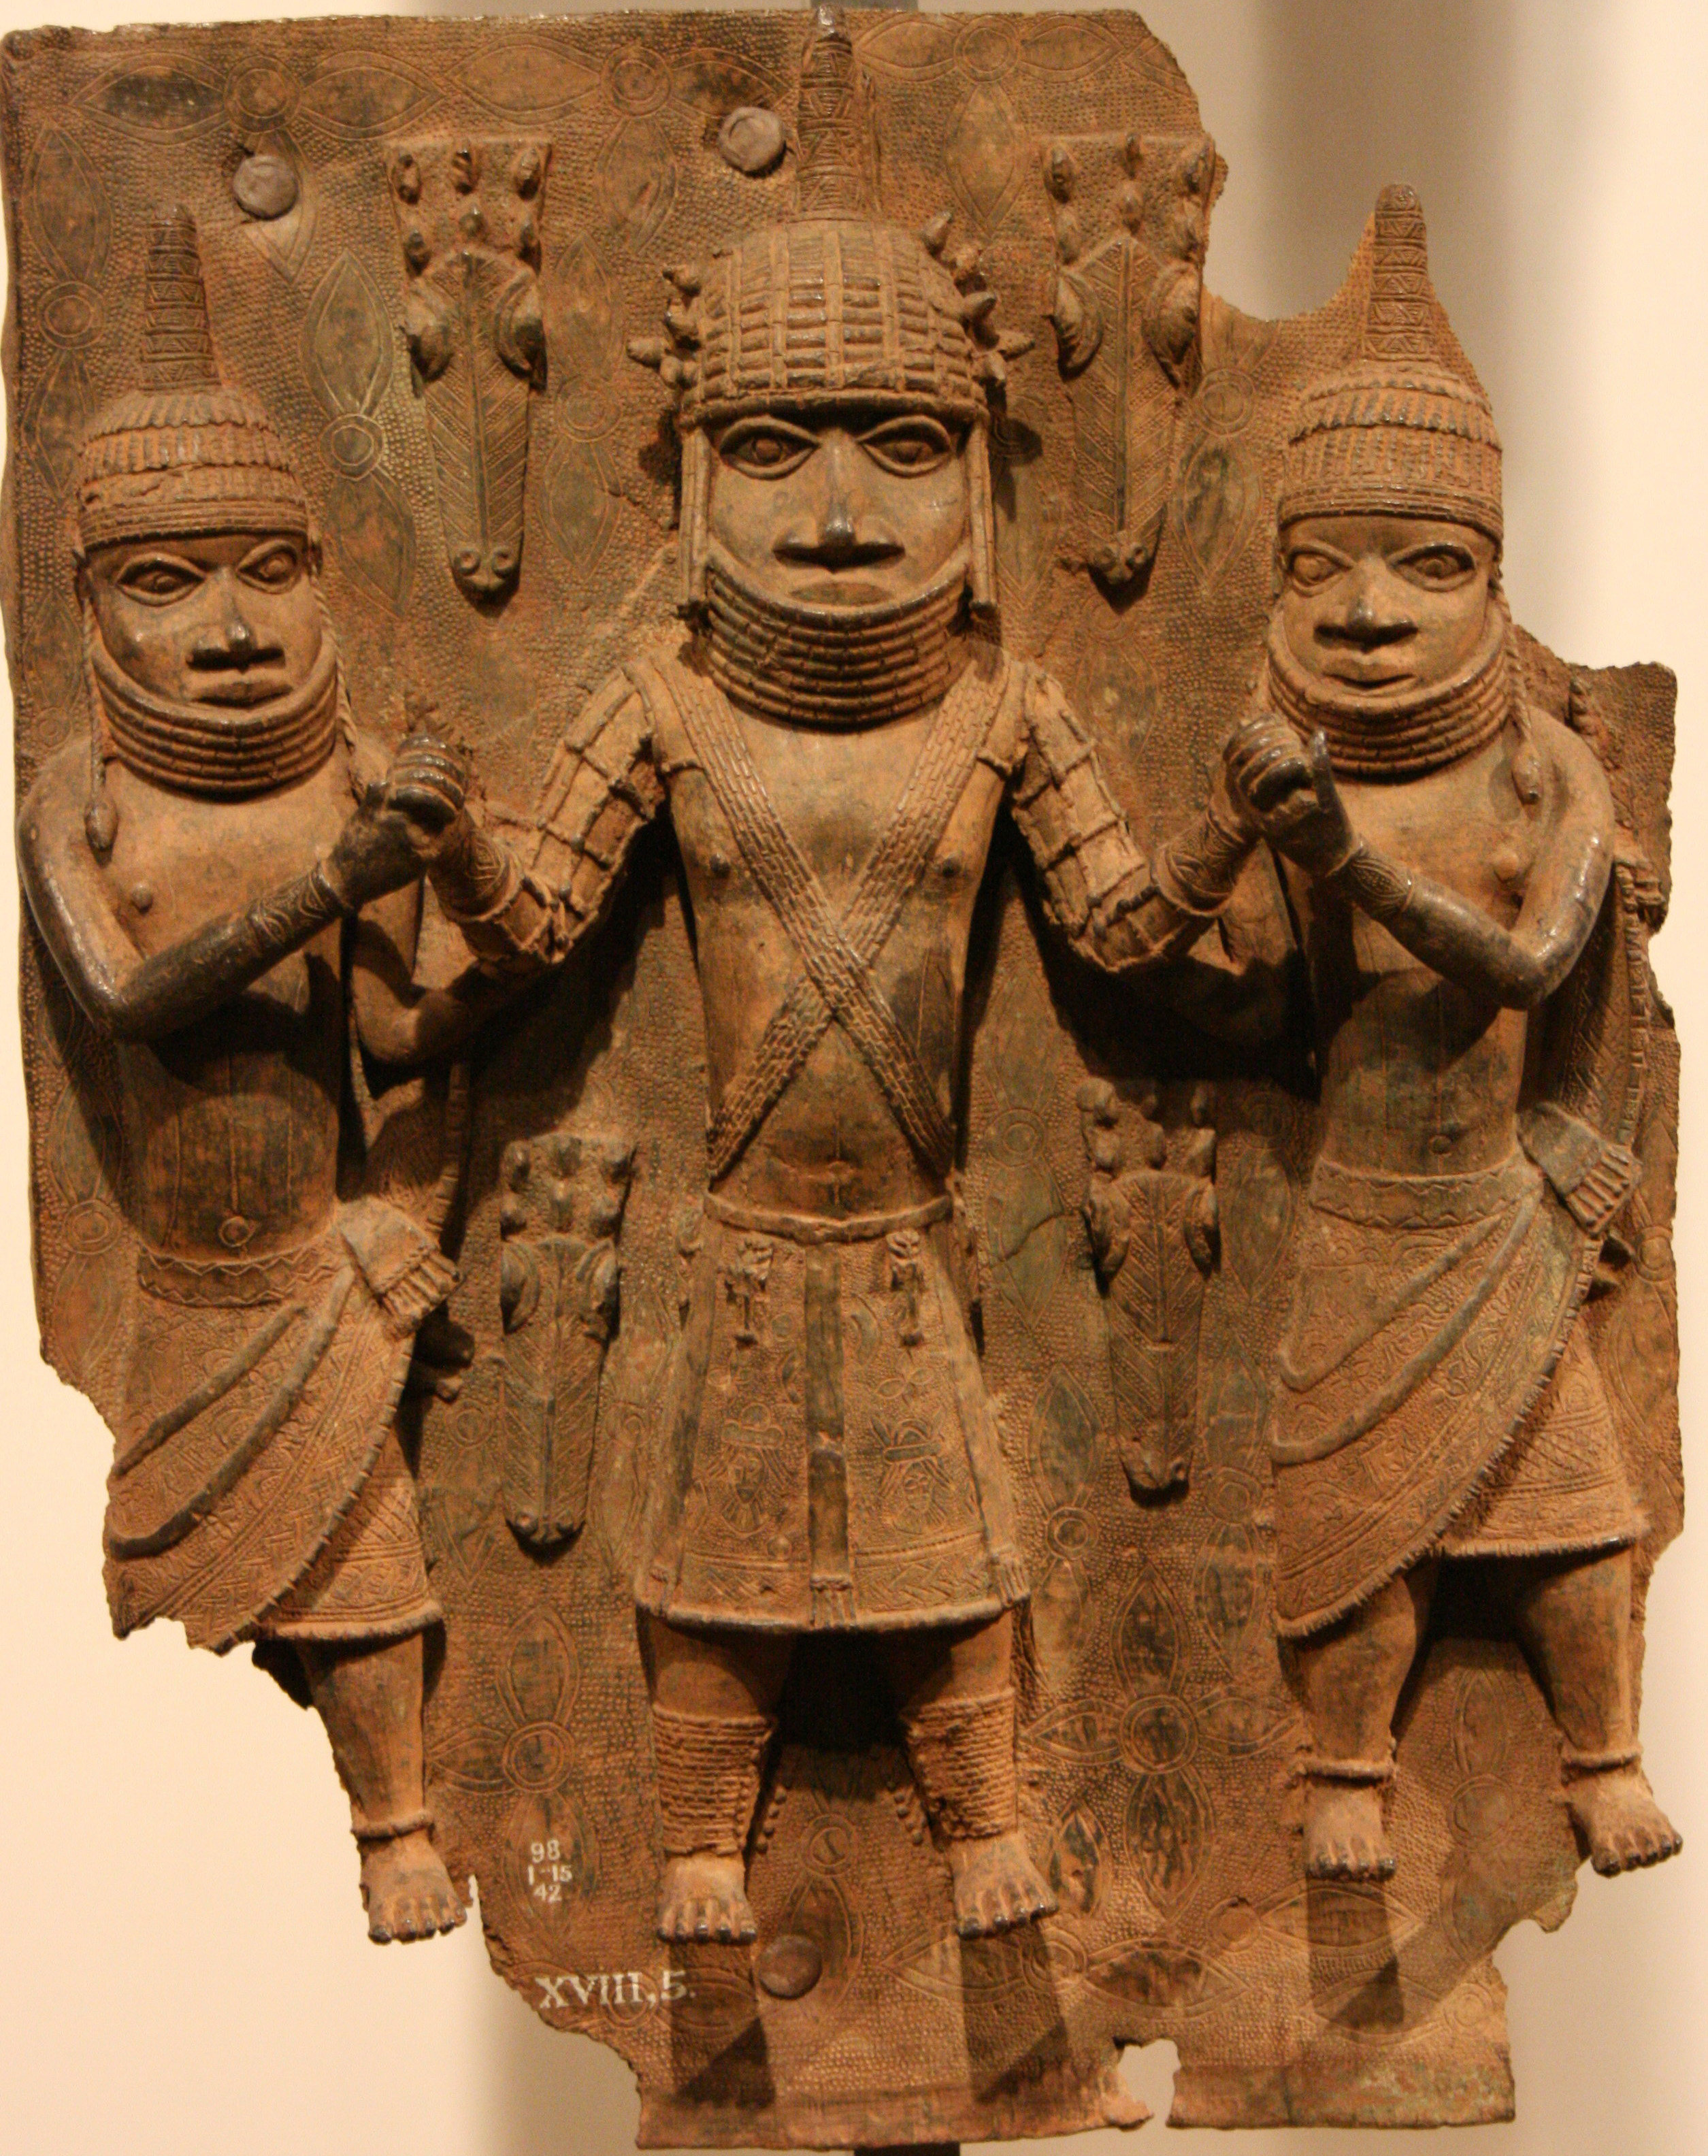 Benin bronze plaque estimated to date back to the 16th century. (Commons/Michel Wal).